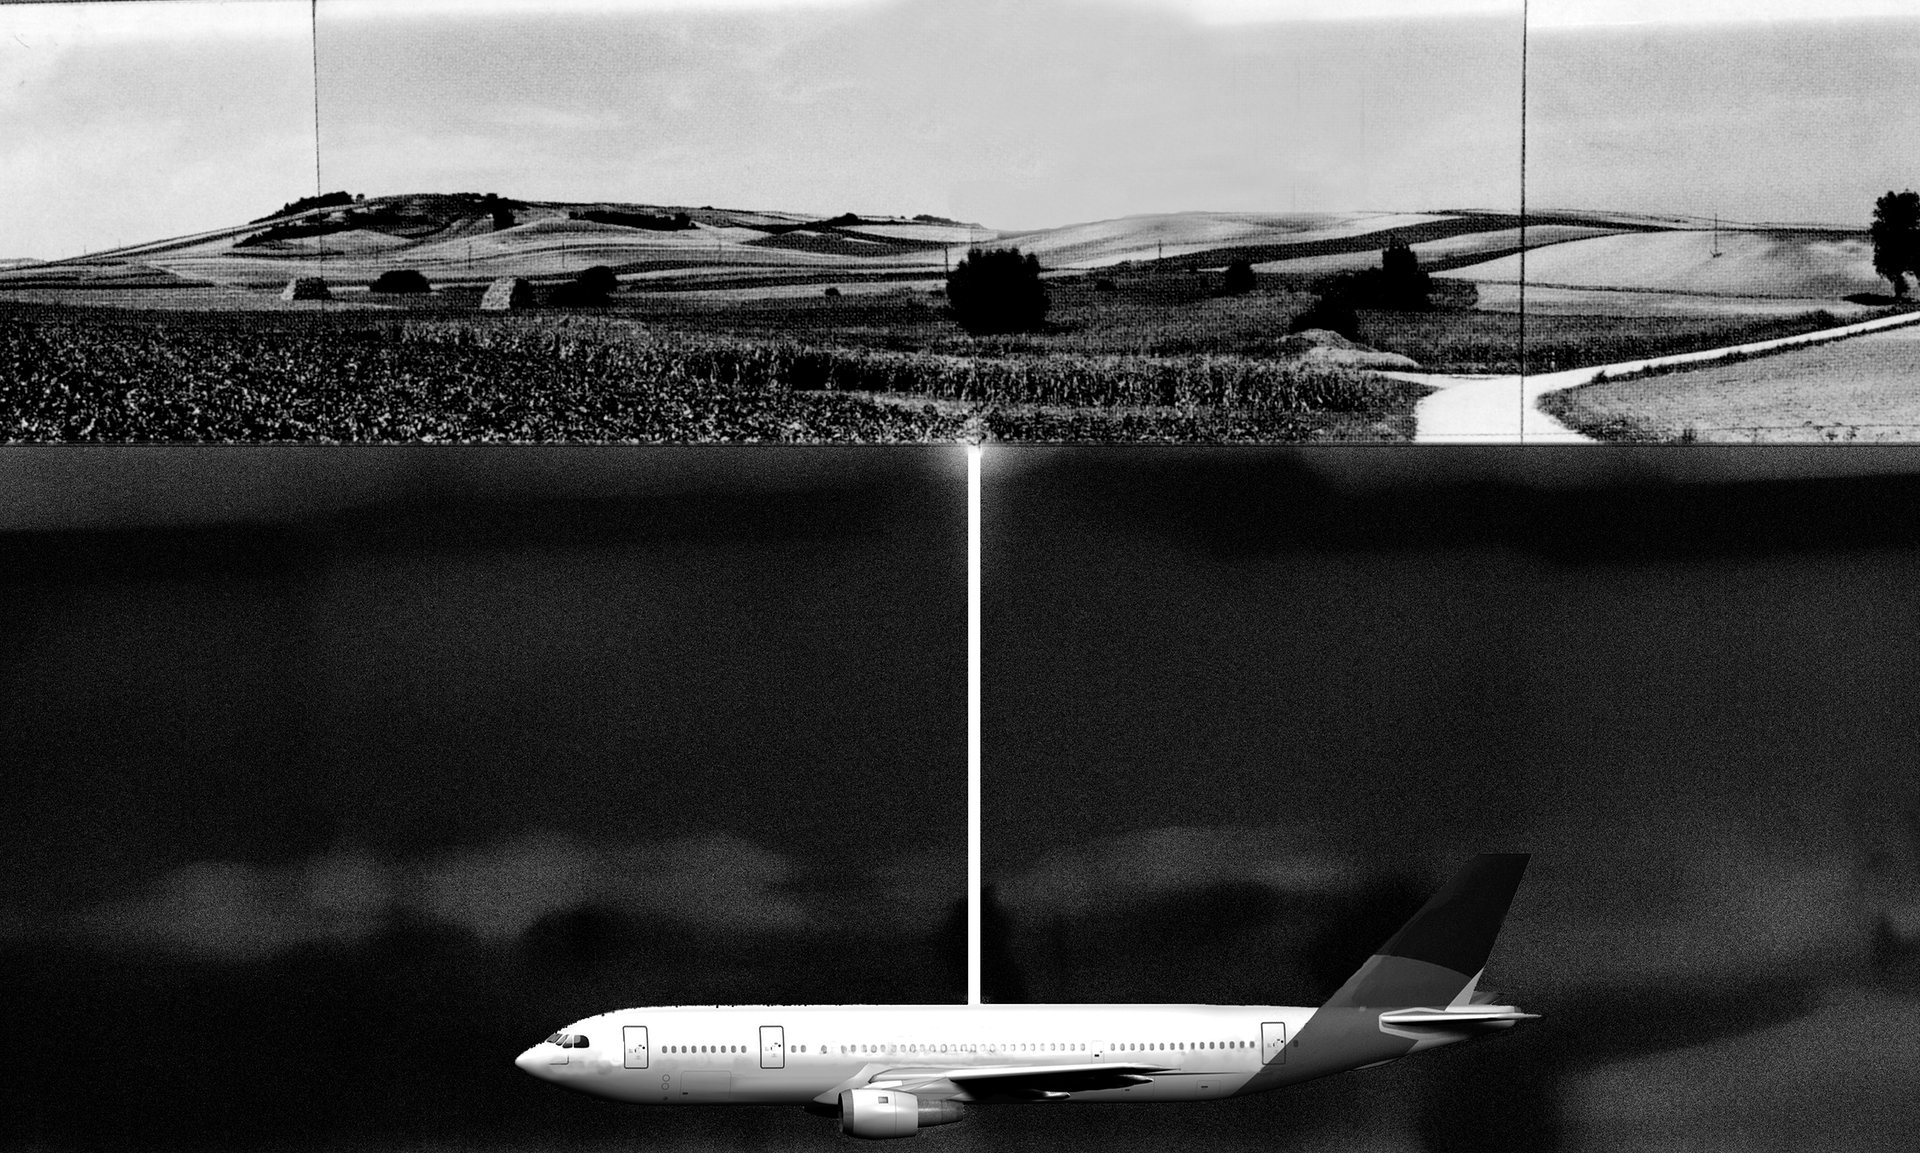 Roger Hiorns' proposal for the Untitled (Buried Aircraft) project. Photograph: Roger Hiorns/Ikon Gallery